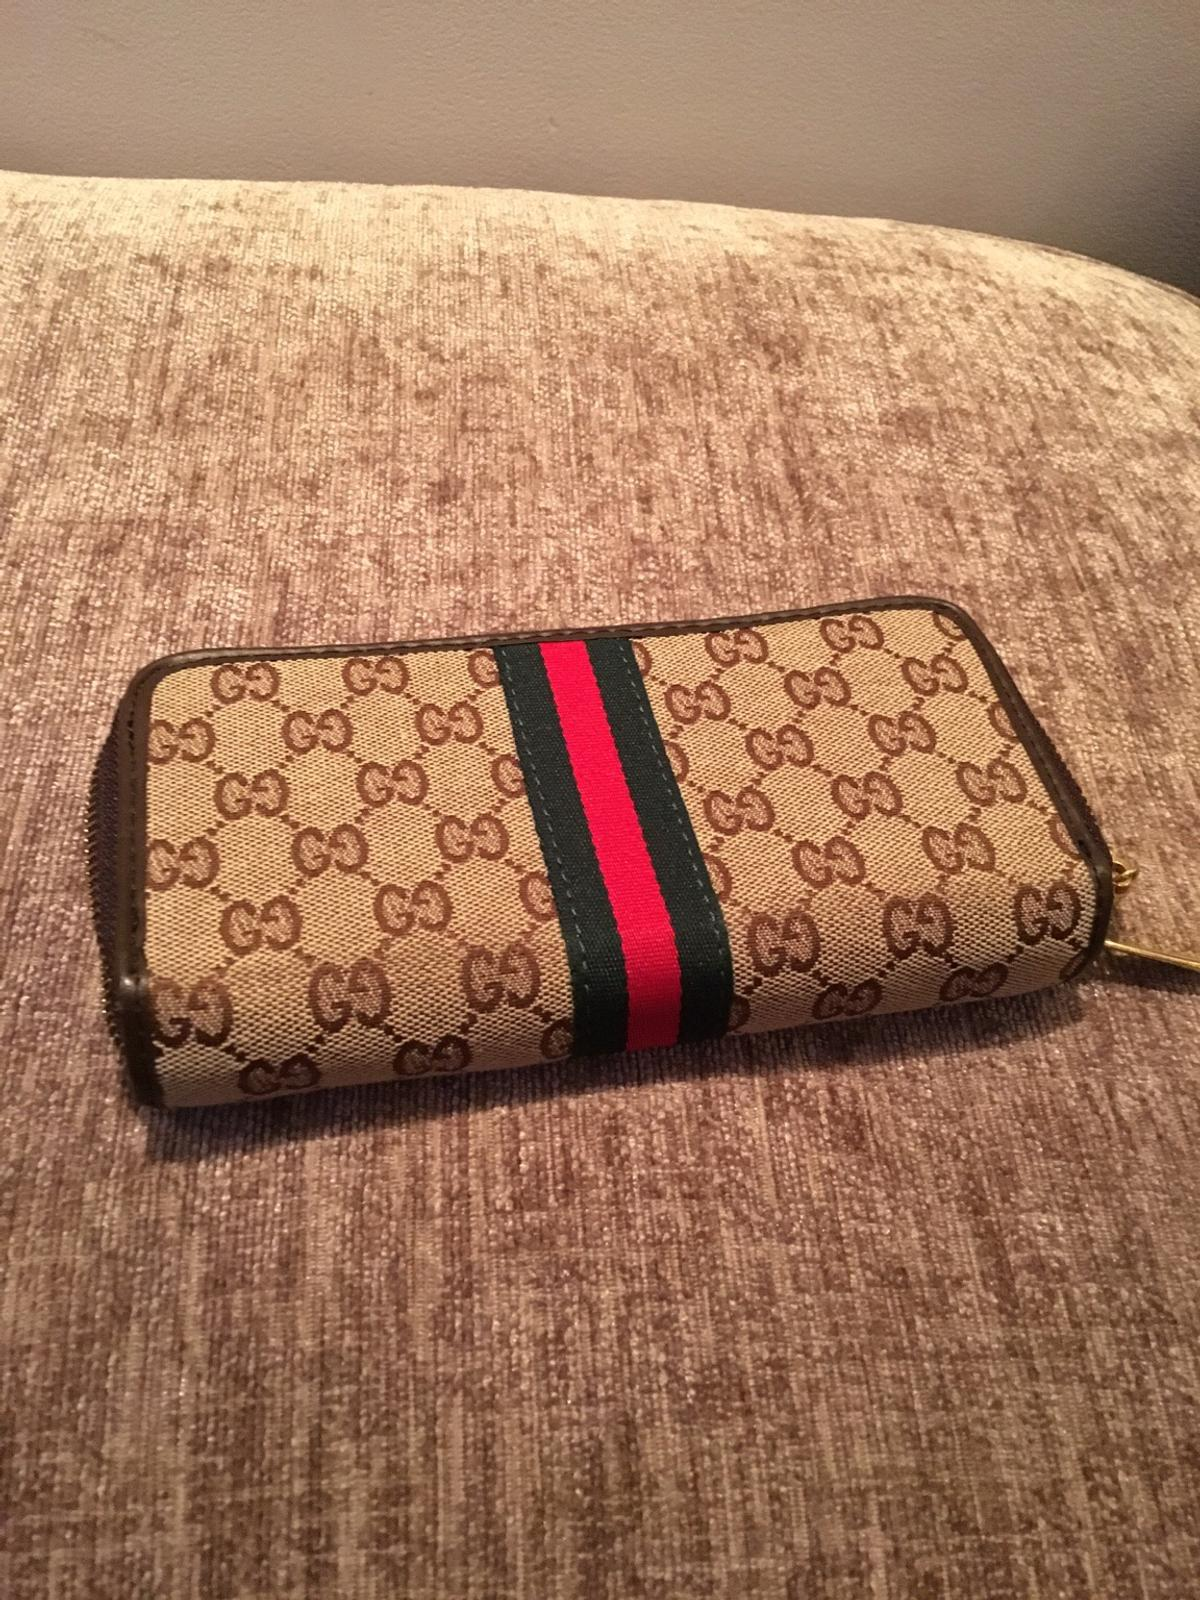 886e875b531 Gucci ladies wallet in E10 London for £40.00 for sale - Shpock